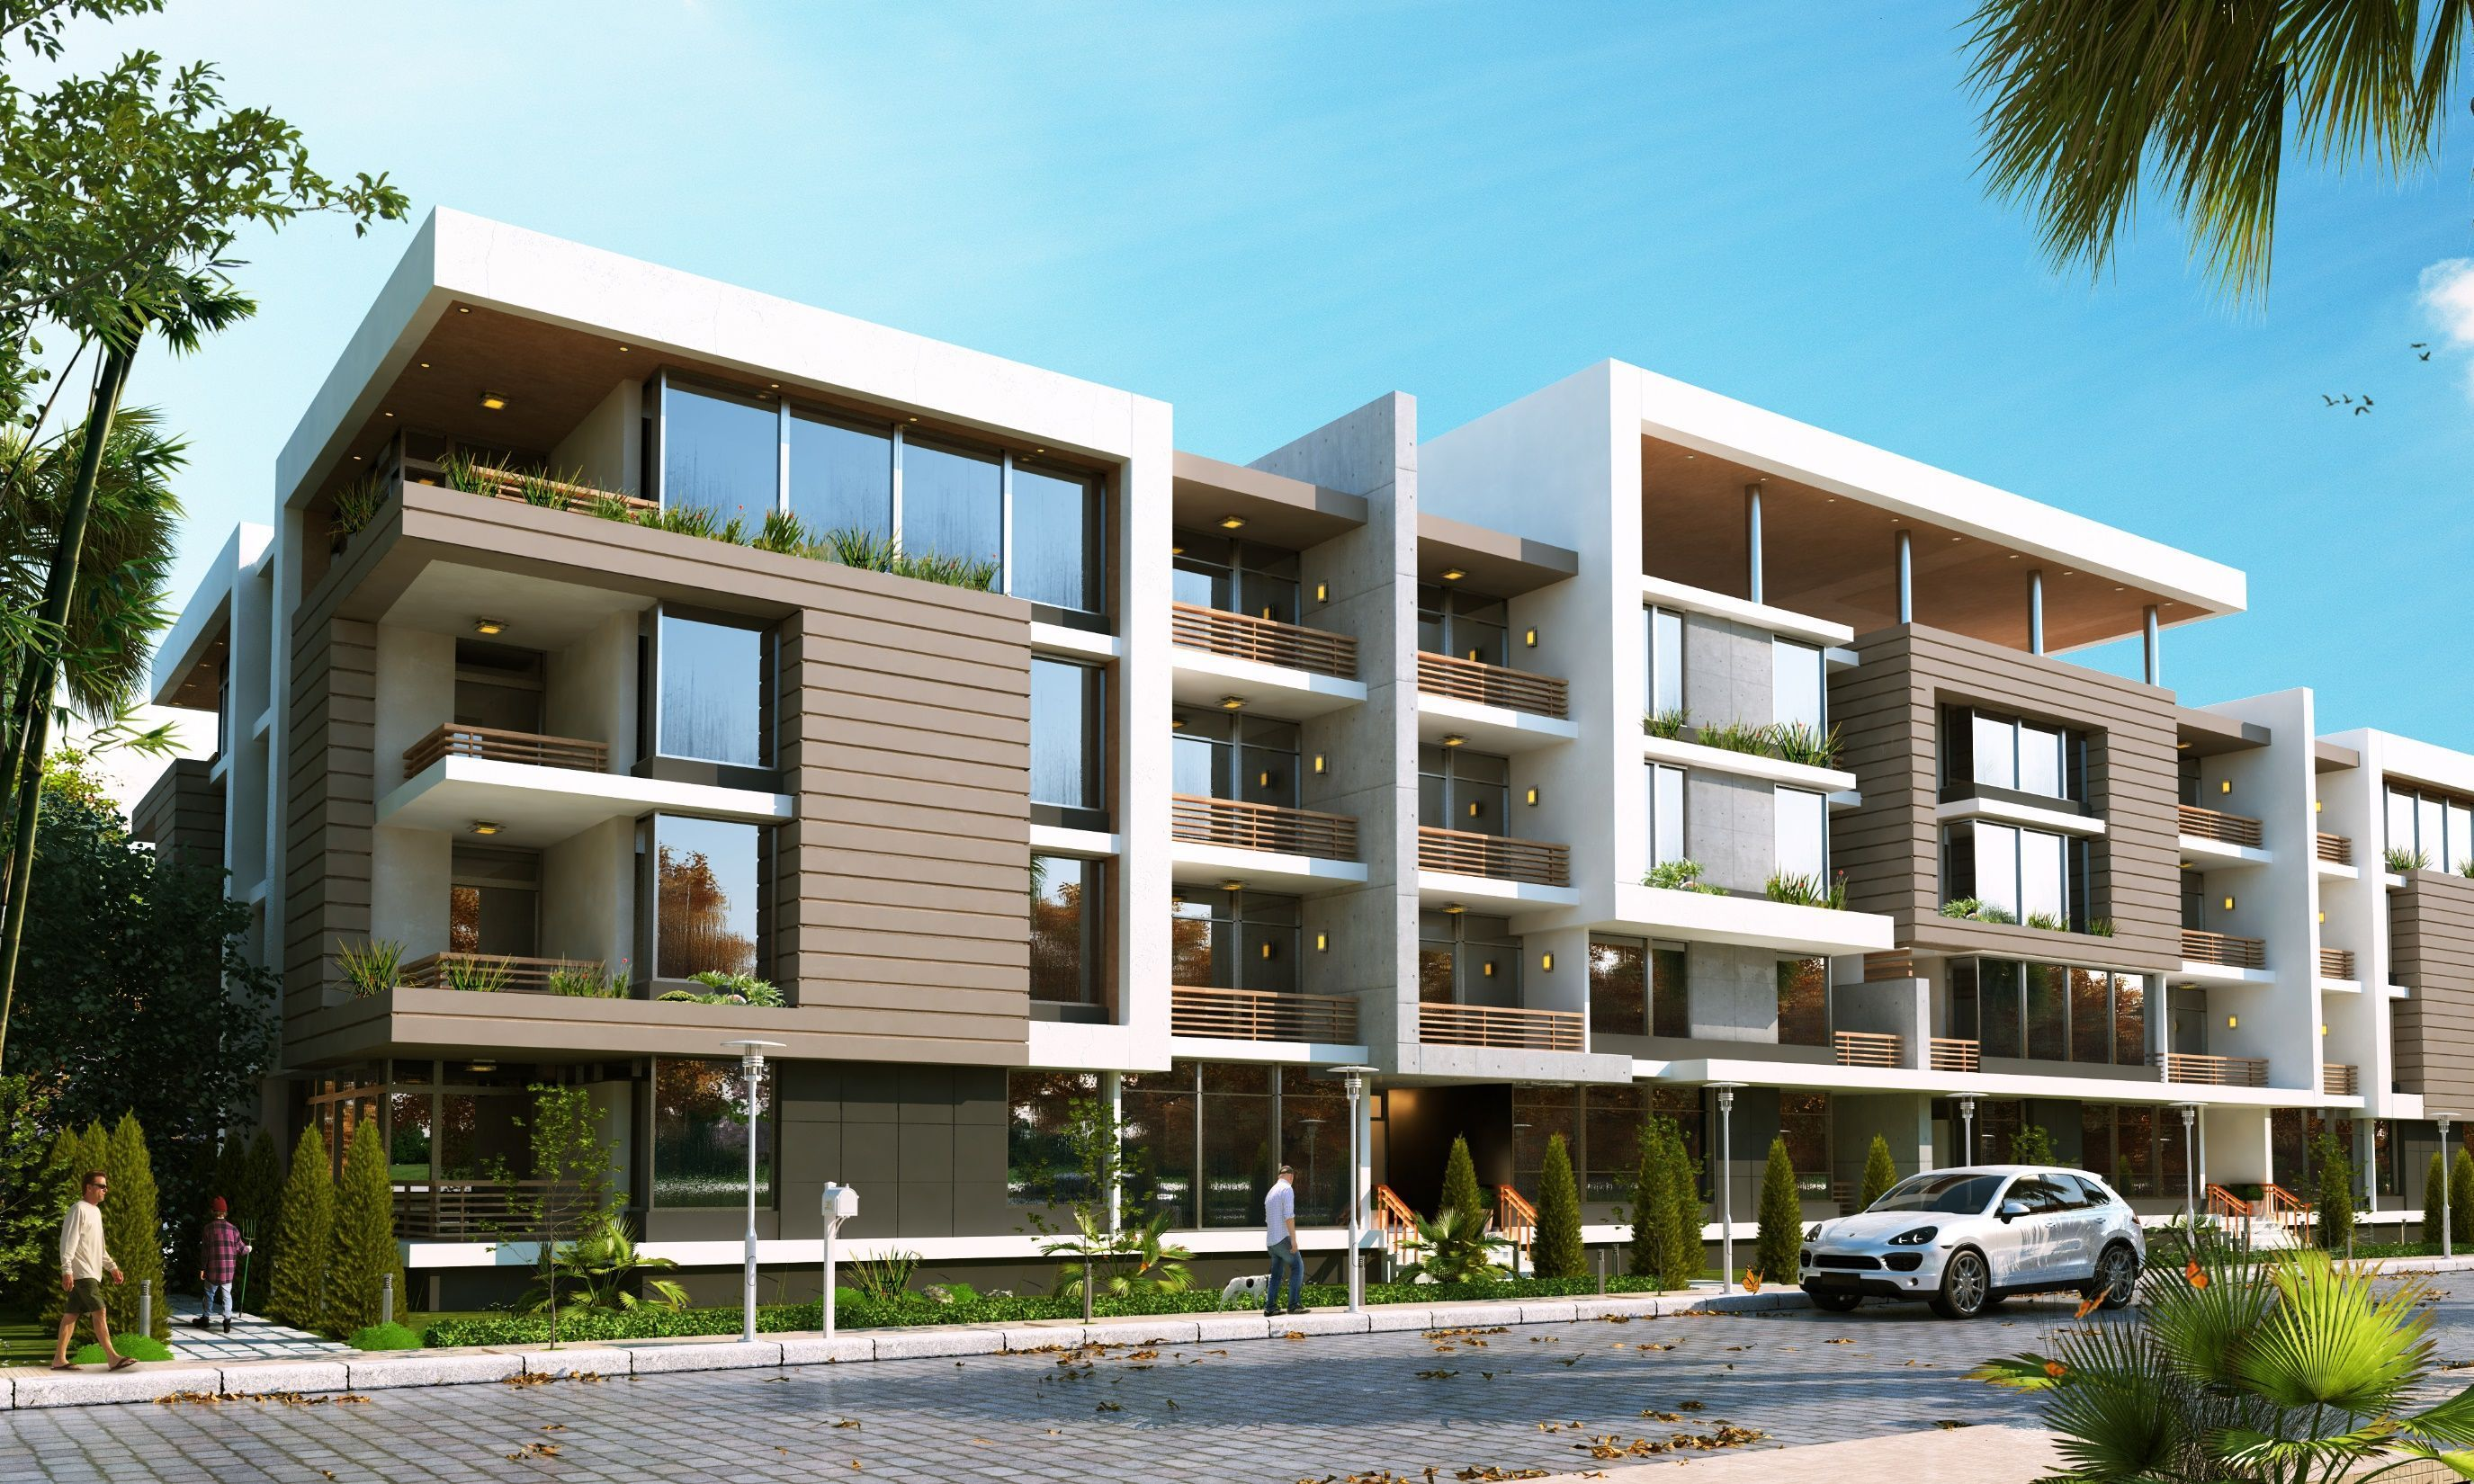 Simple 3 stories residential building arquitectura for Modelli di case moderne